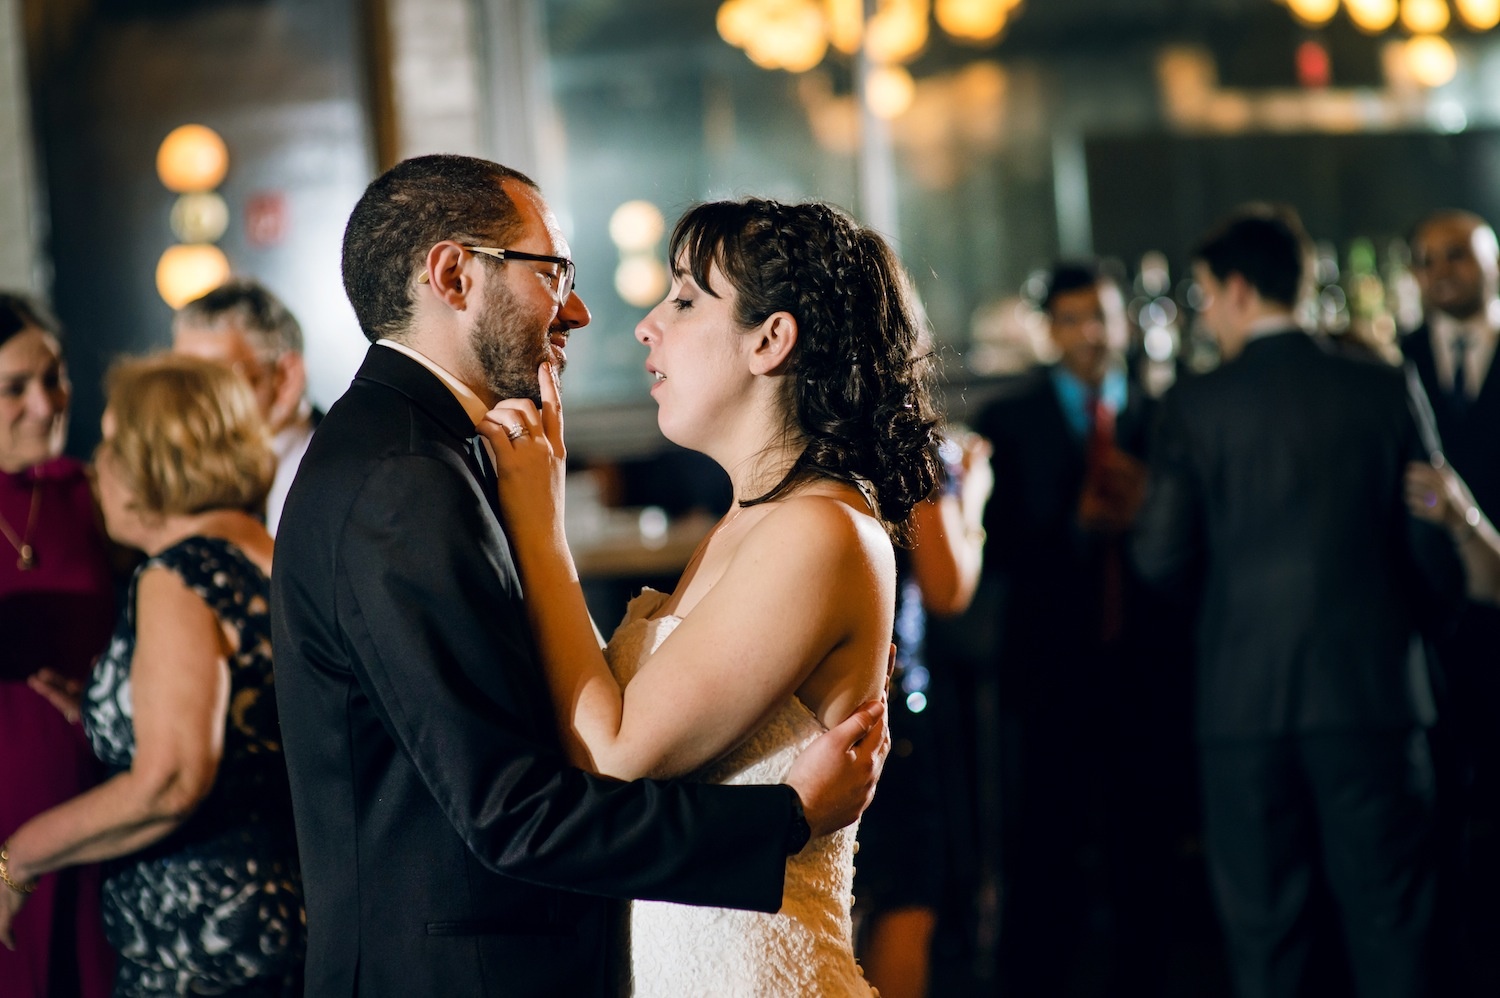 jonathan-and-jamie-on-dance-floor-in-nyc-wedding-photos